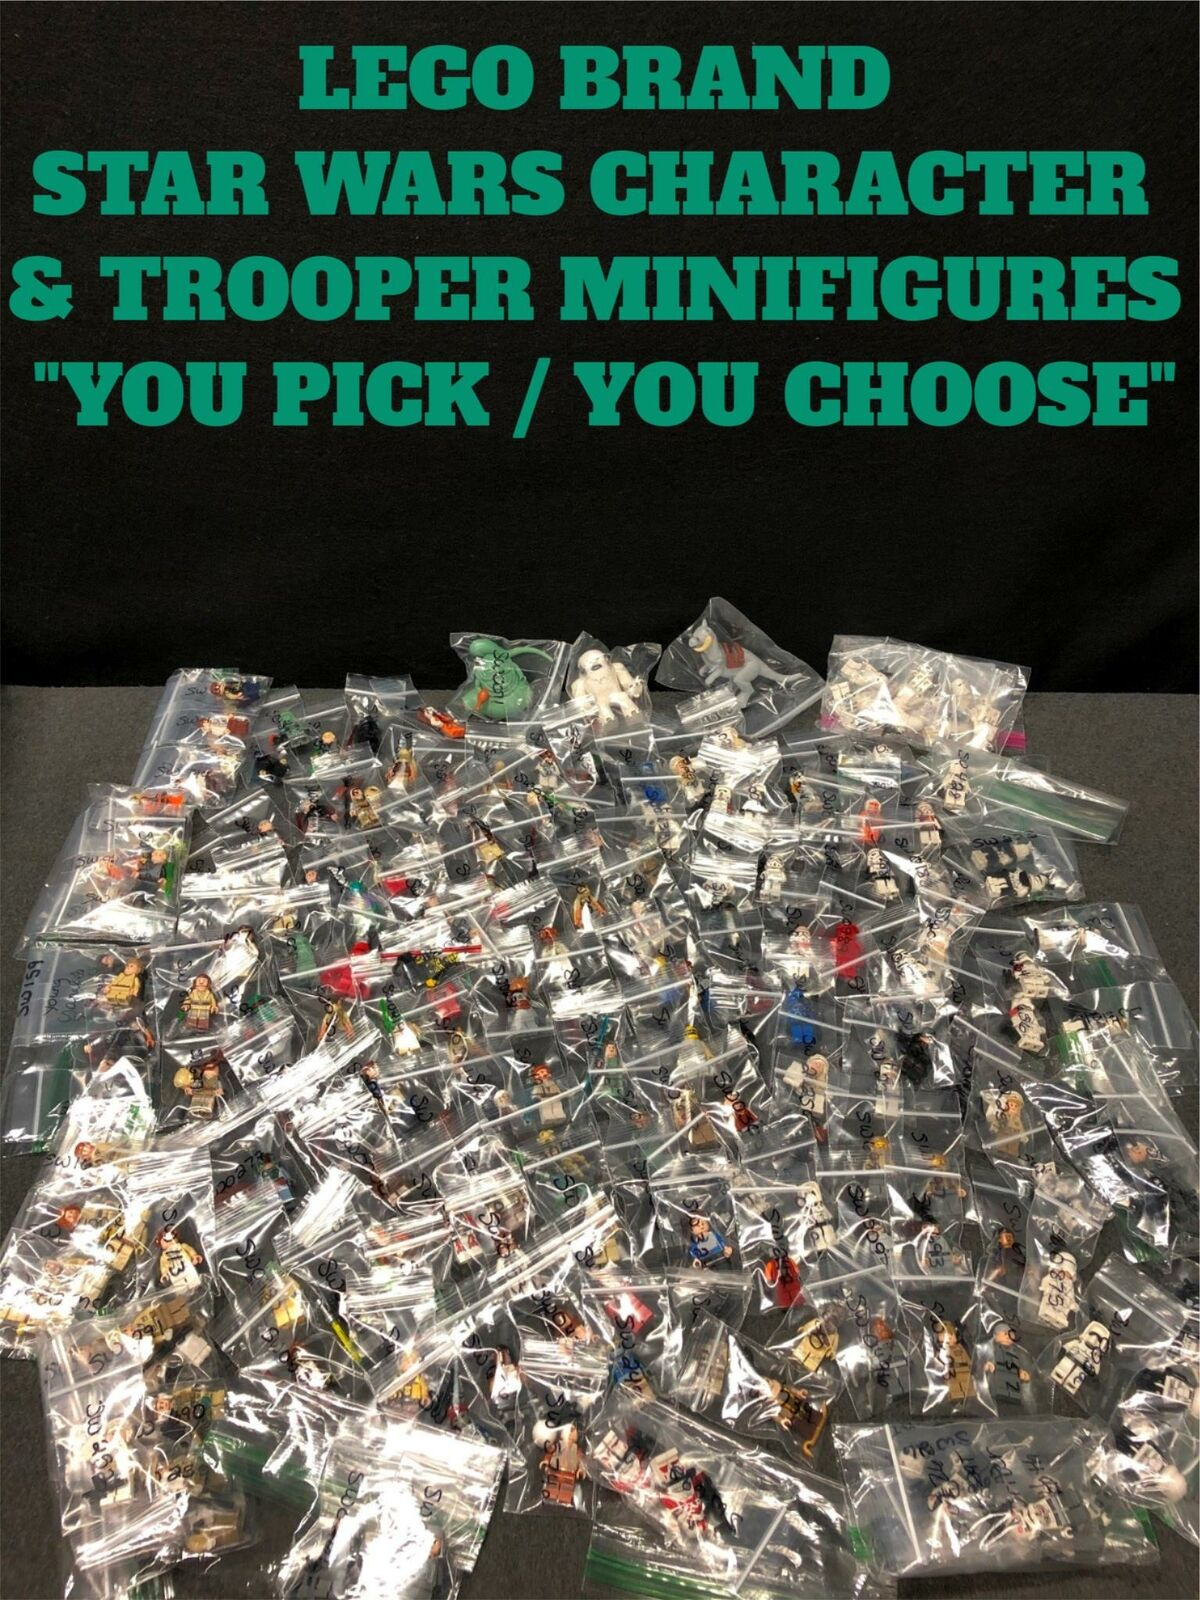 """AUTHENTIC LEGO BRAND STAR WARS CHARACTER MINIFIGURE /""""YOU PICK YOU CHOOSE/"""""""